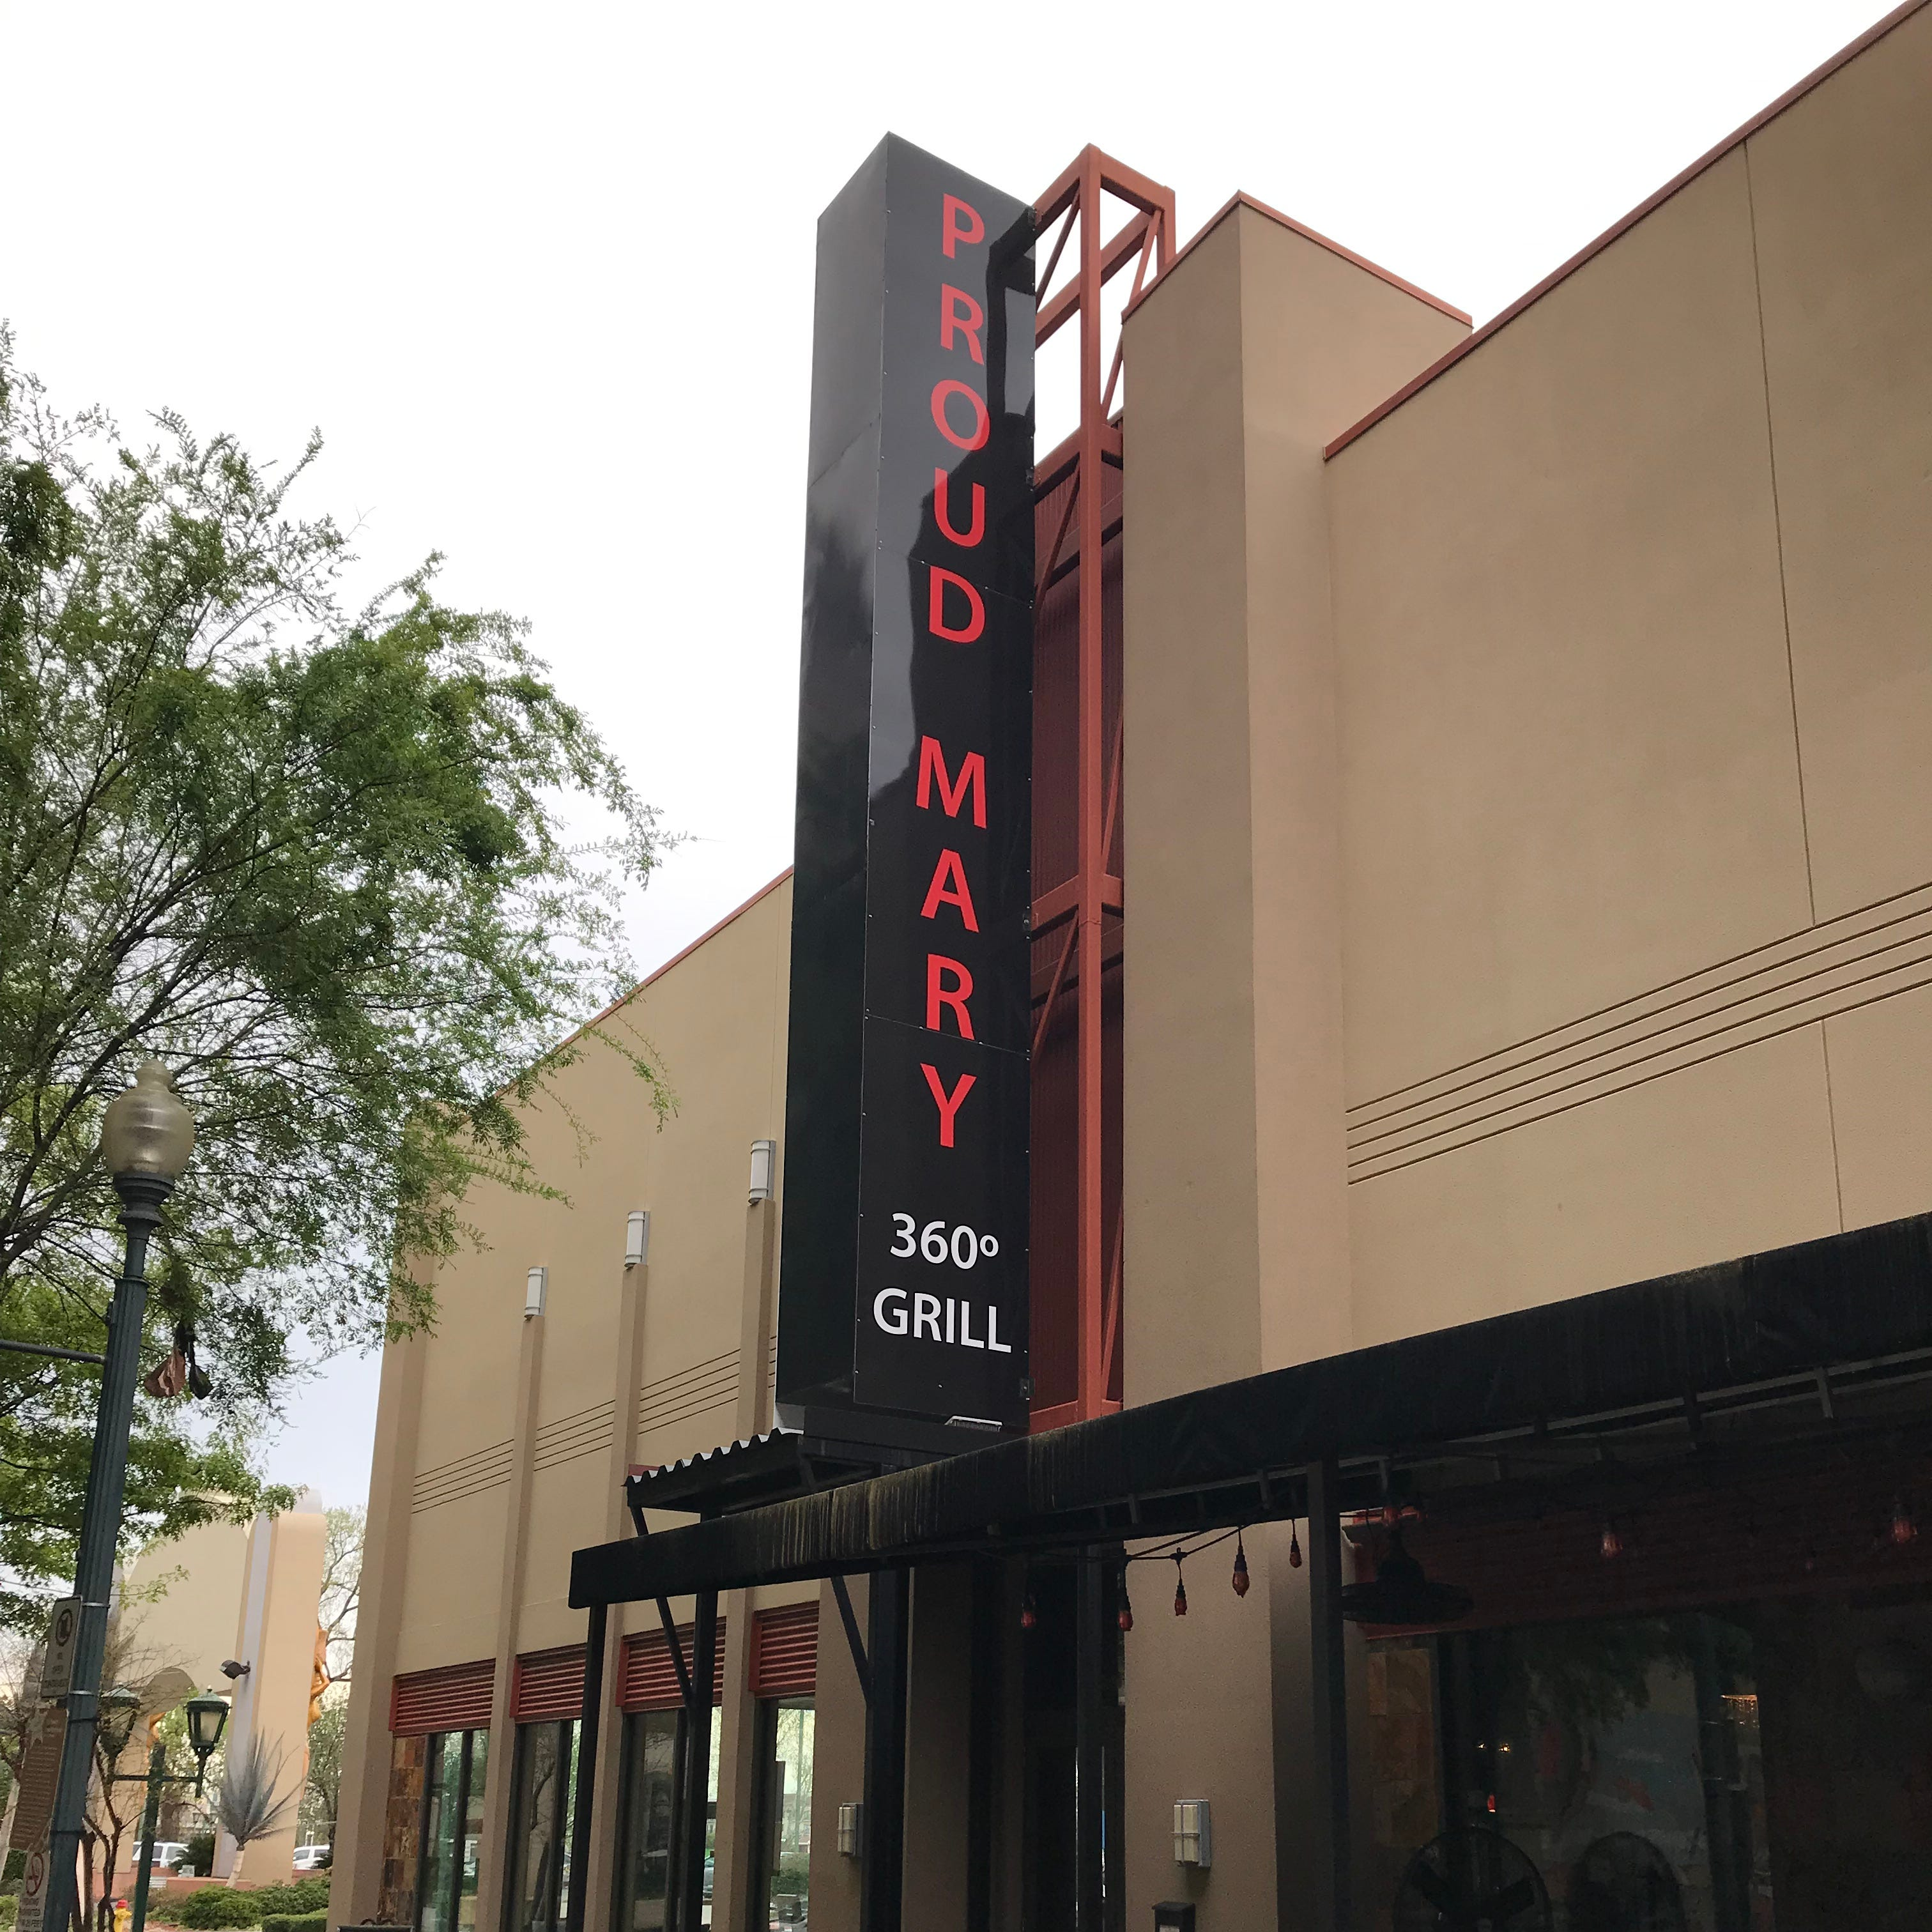 Red River District restaurant remains afloat during pending lawsuits and unpaid rent